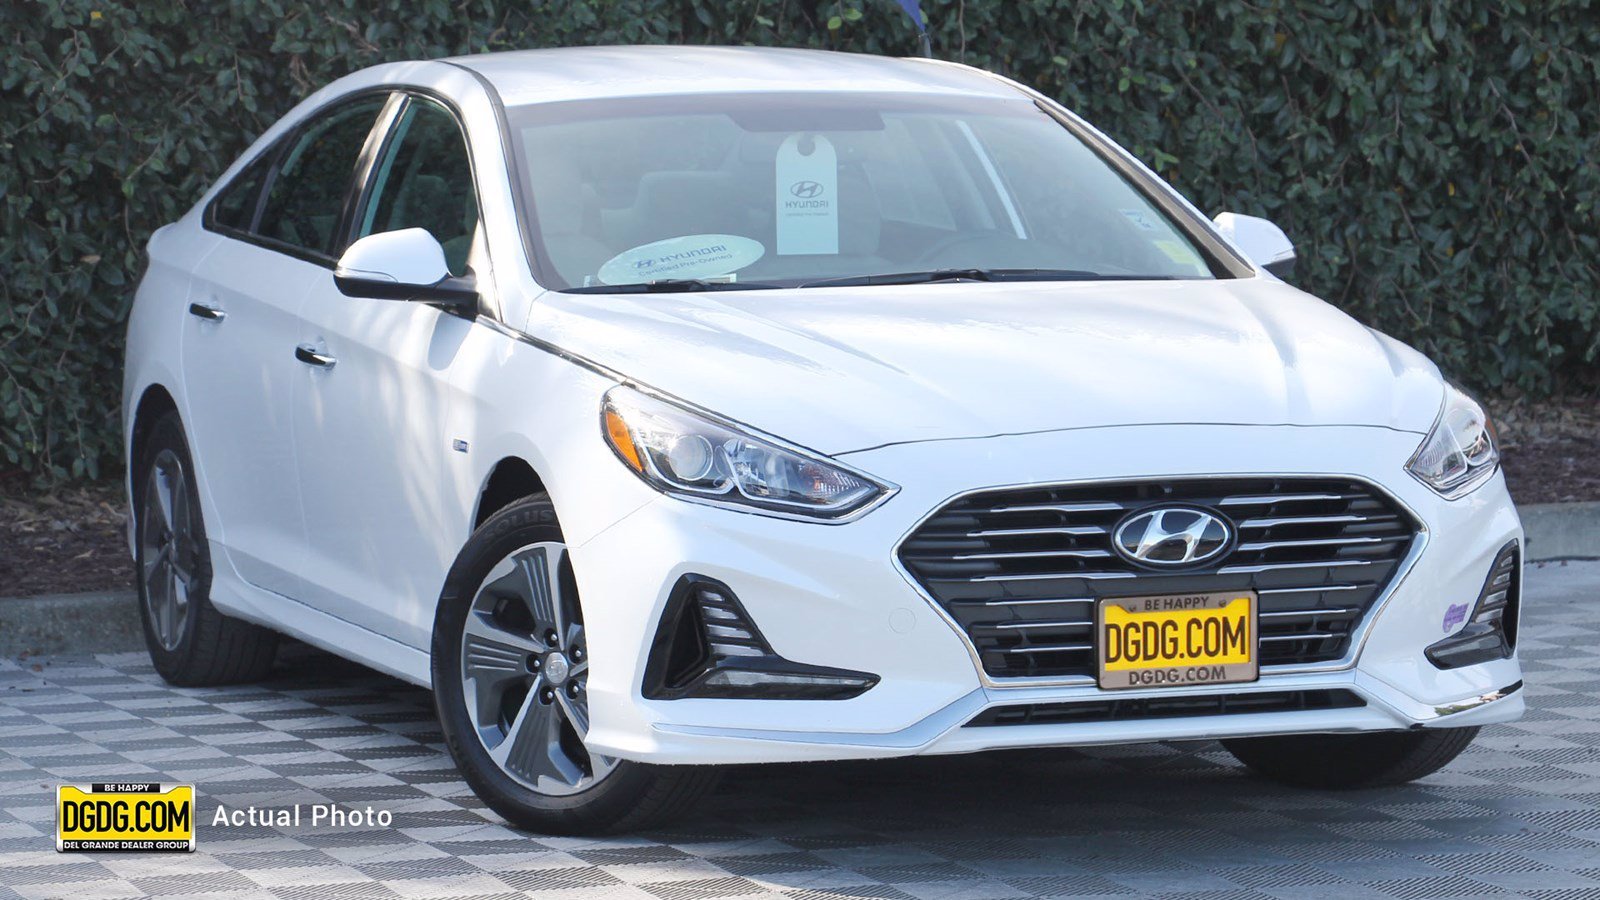 Certified Pre-Owned 2019 Hyundai Sonata Plug-In Hybrid